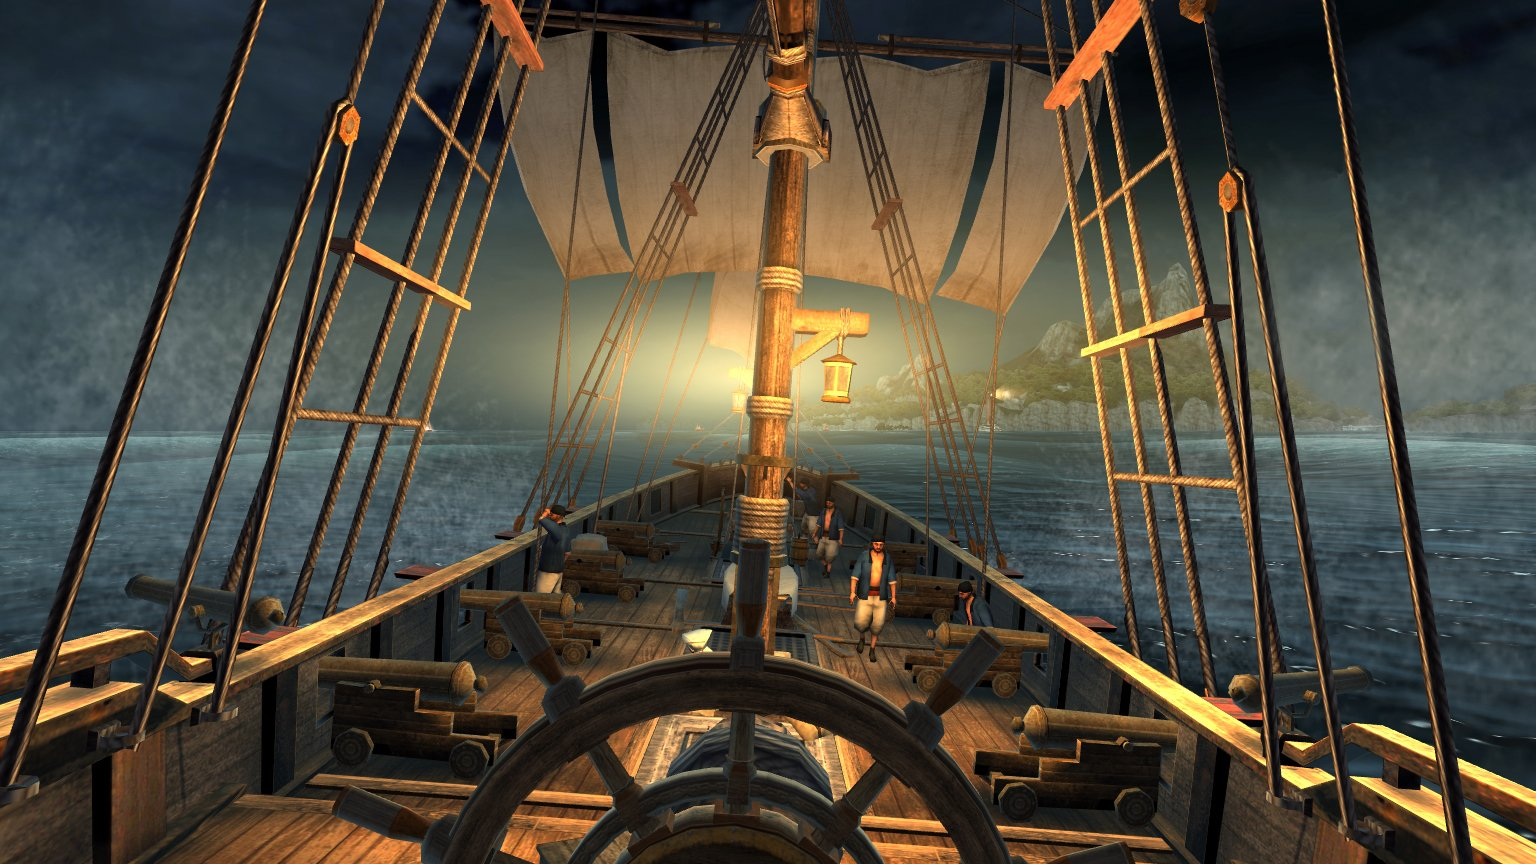 Assassin's Creed Pirates Set One Year After Assassin's Creed 4 #28809